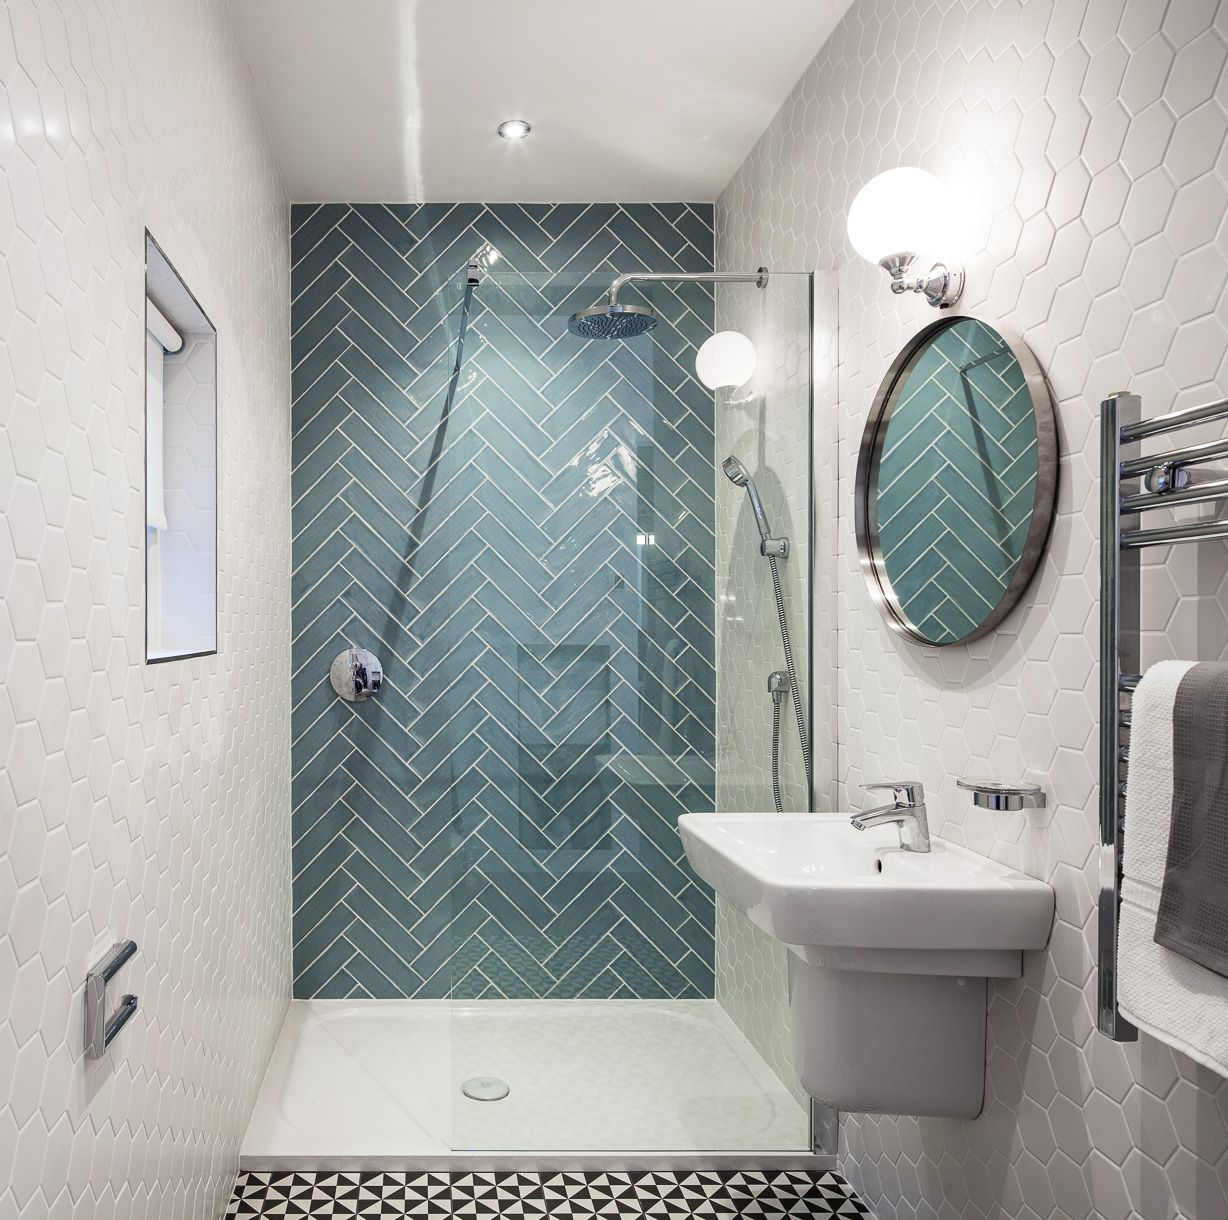 Small quirky bathroom design with seamless double shower, hexagonal ...